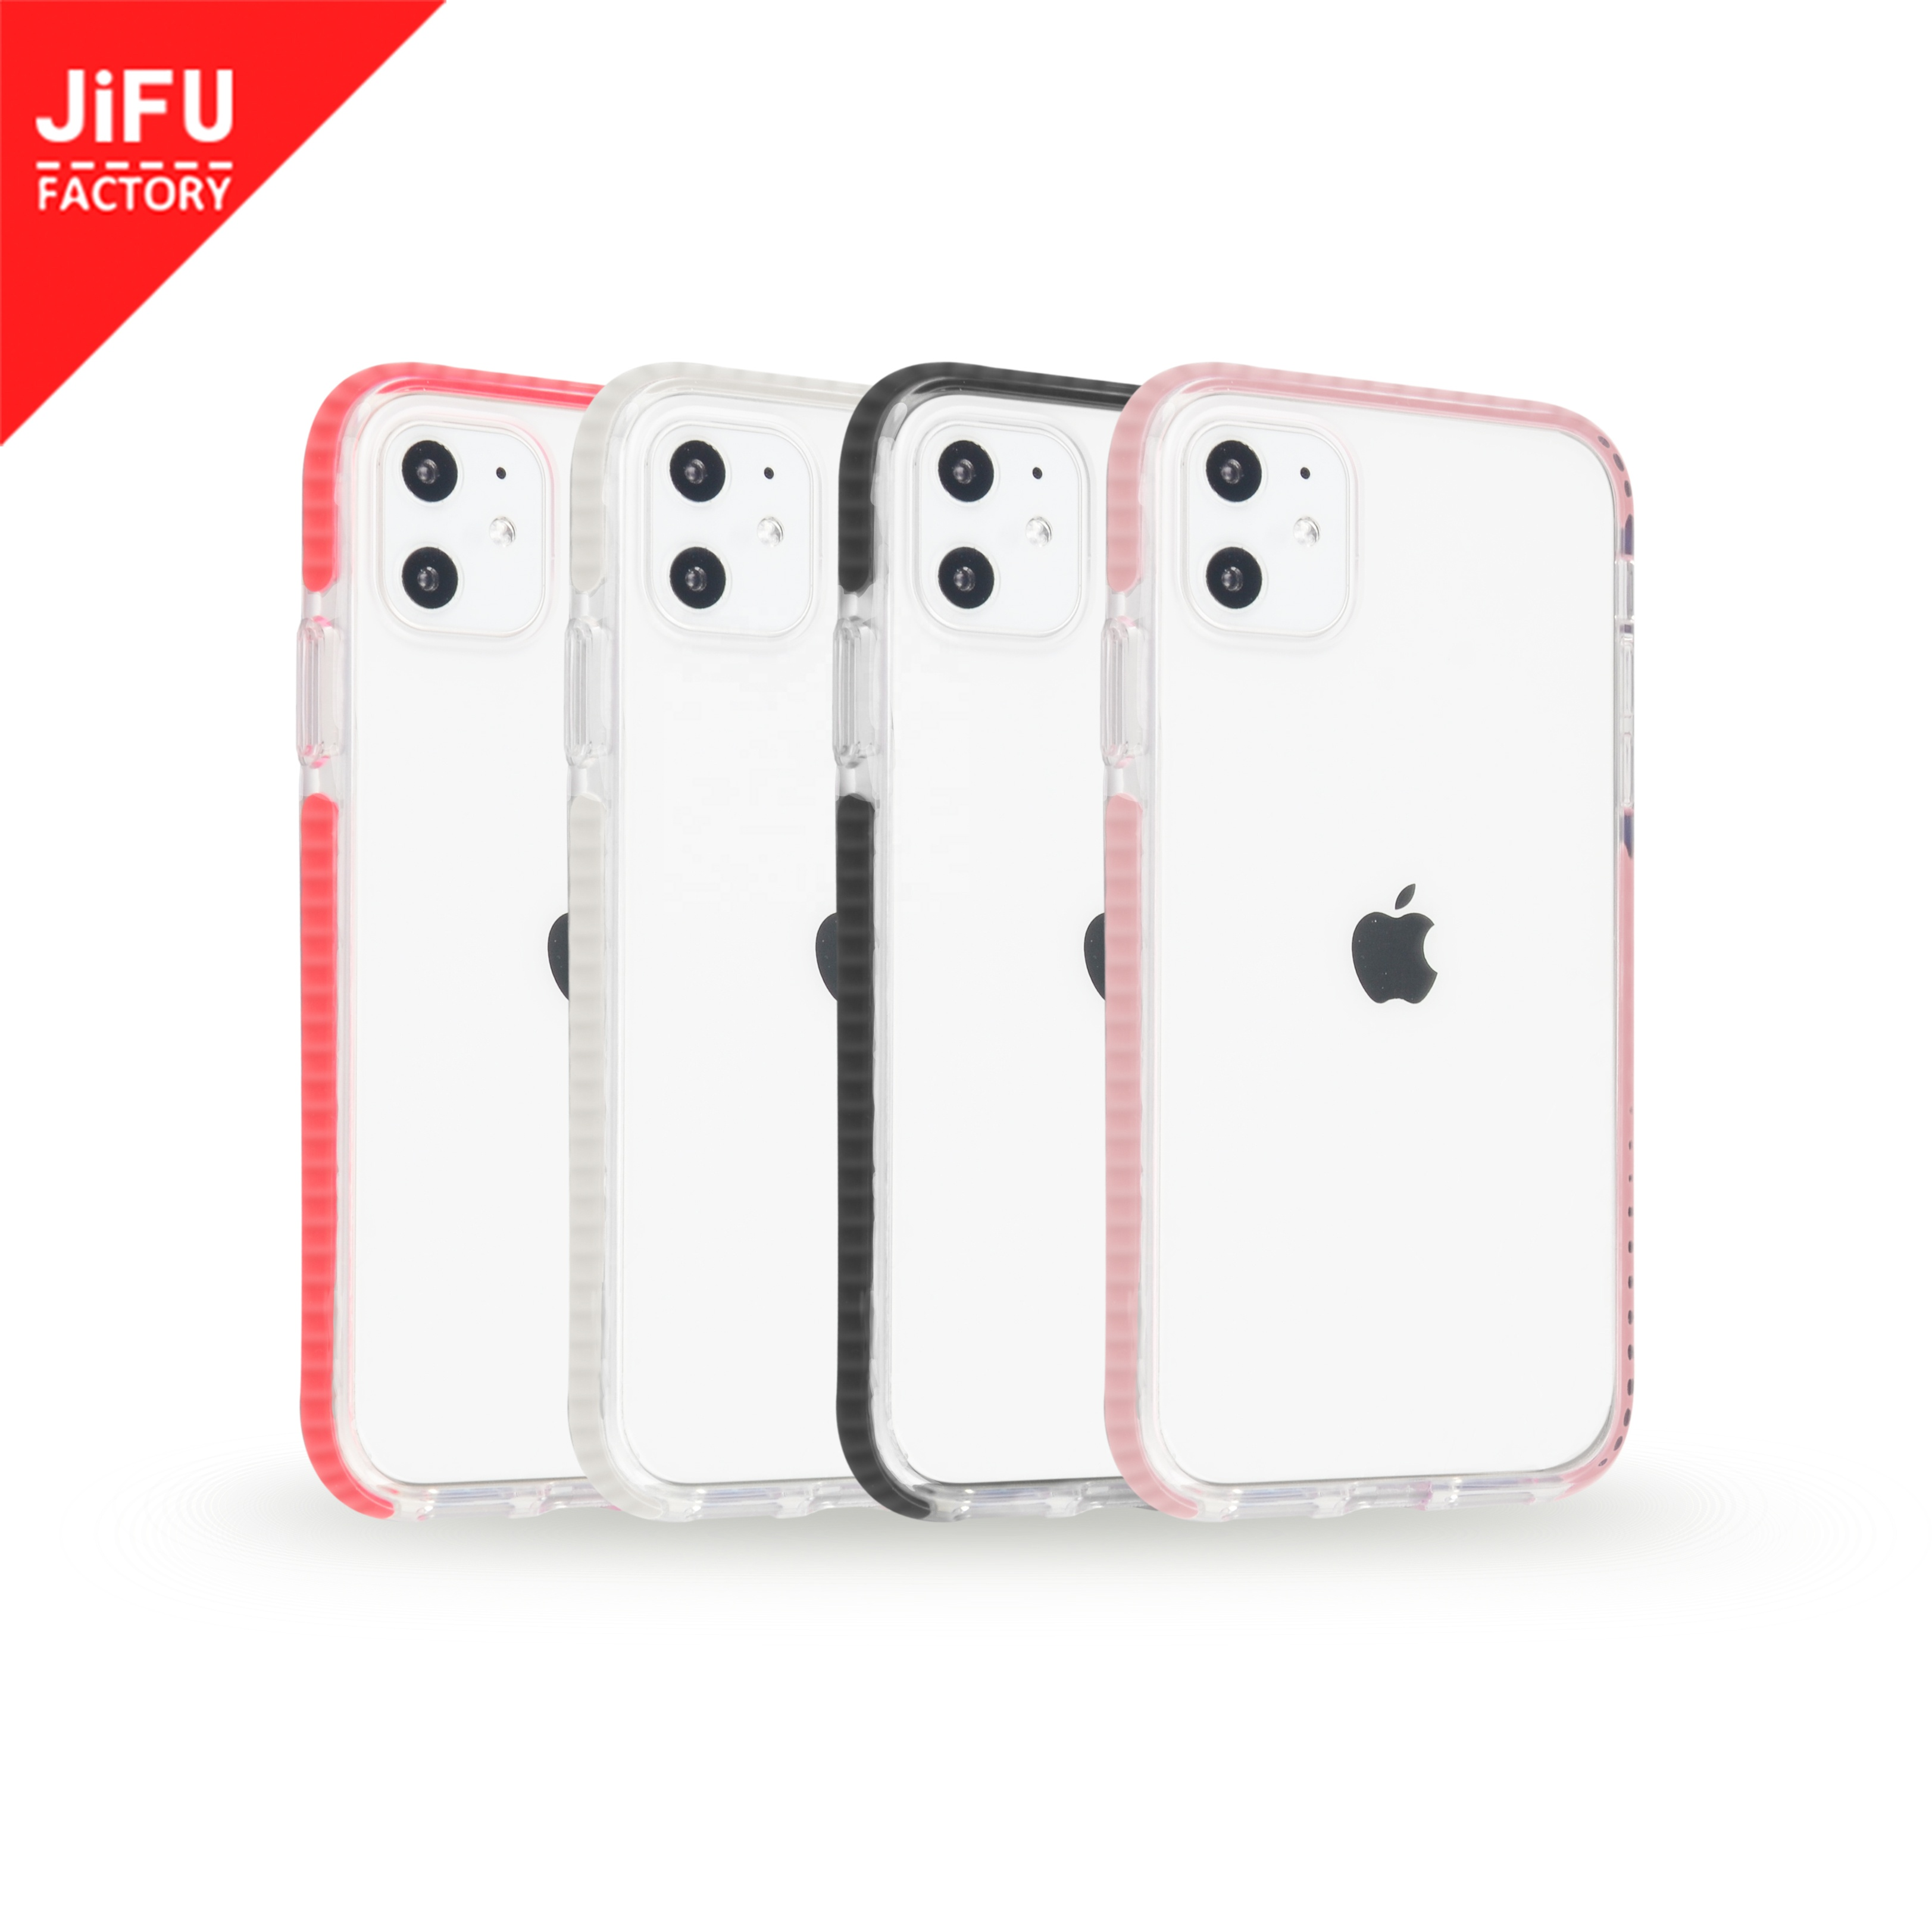 Support small MOQ transparent PC back <strong>phone</strong> cover two-tone impact <strong>phone</strong> <strong>case</strong> for iPhone11/11 Pro/11 Pro Max